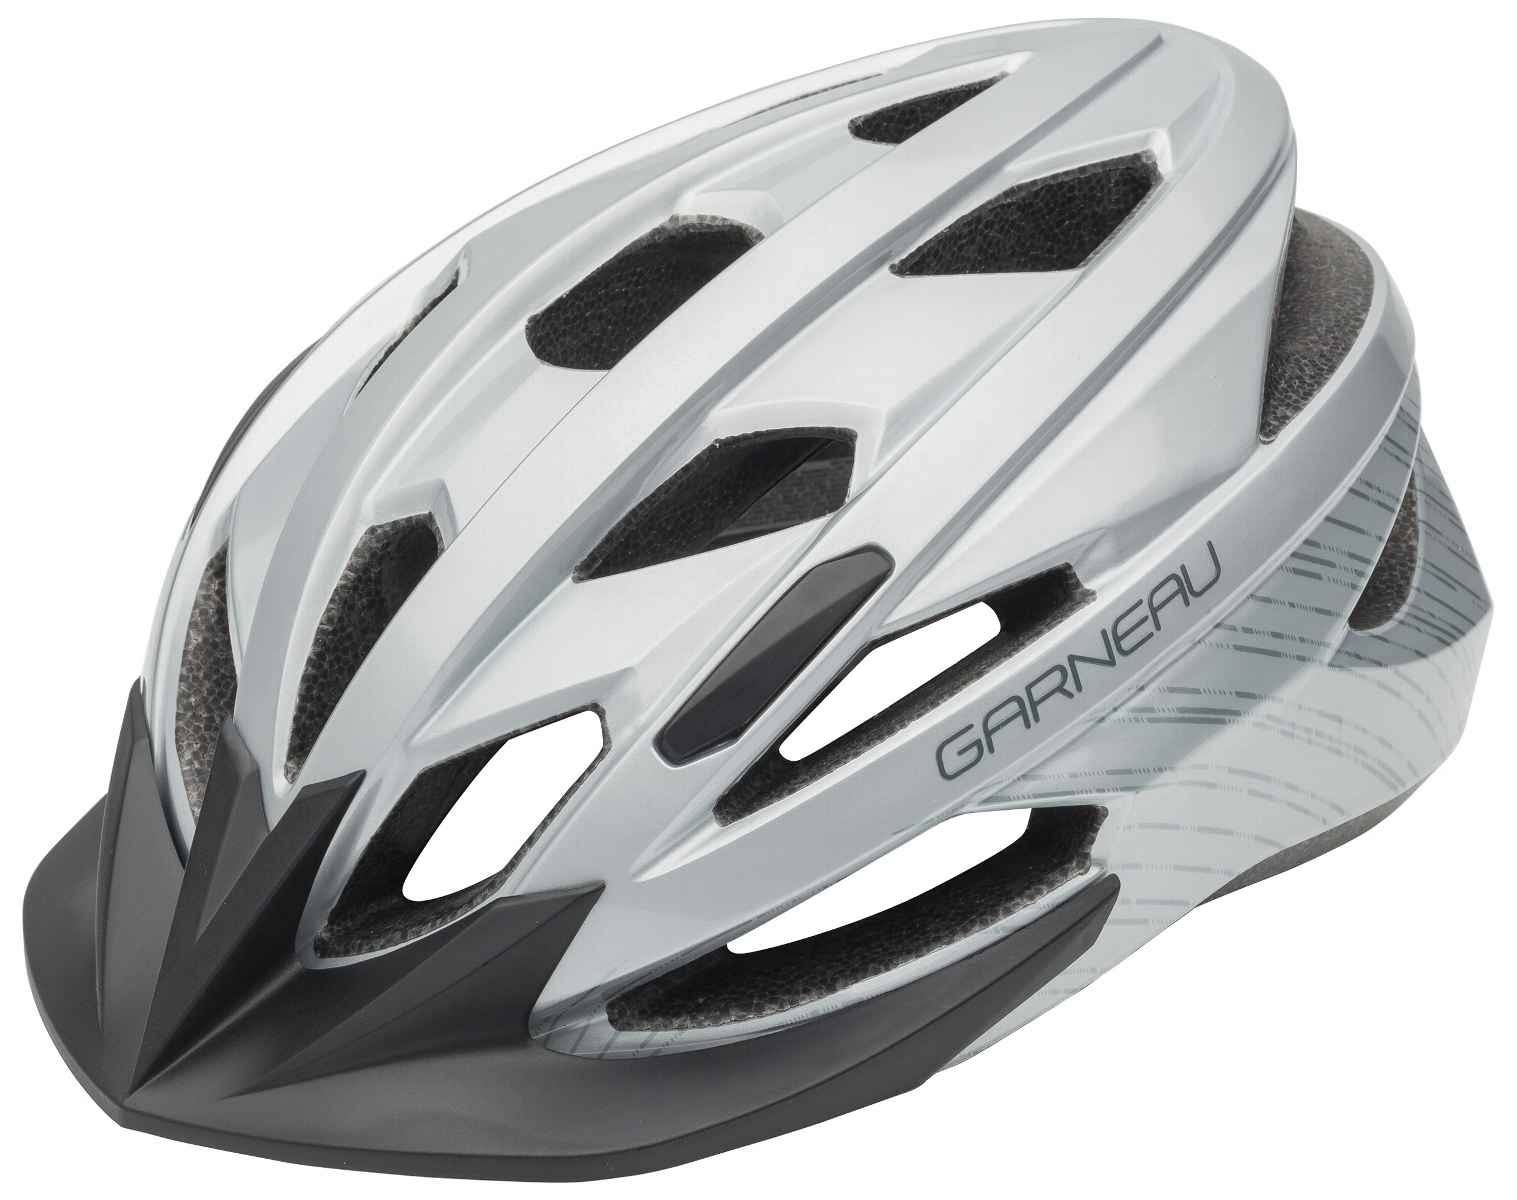 Louis Garneau Eagle Cycling Helmet Gray UA